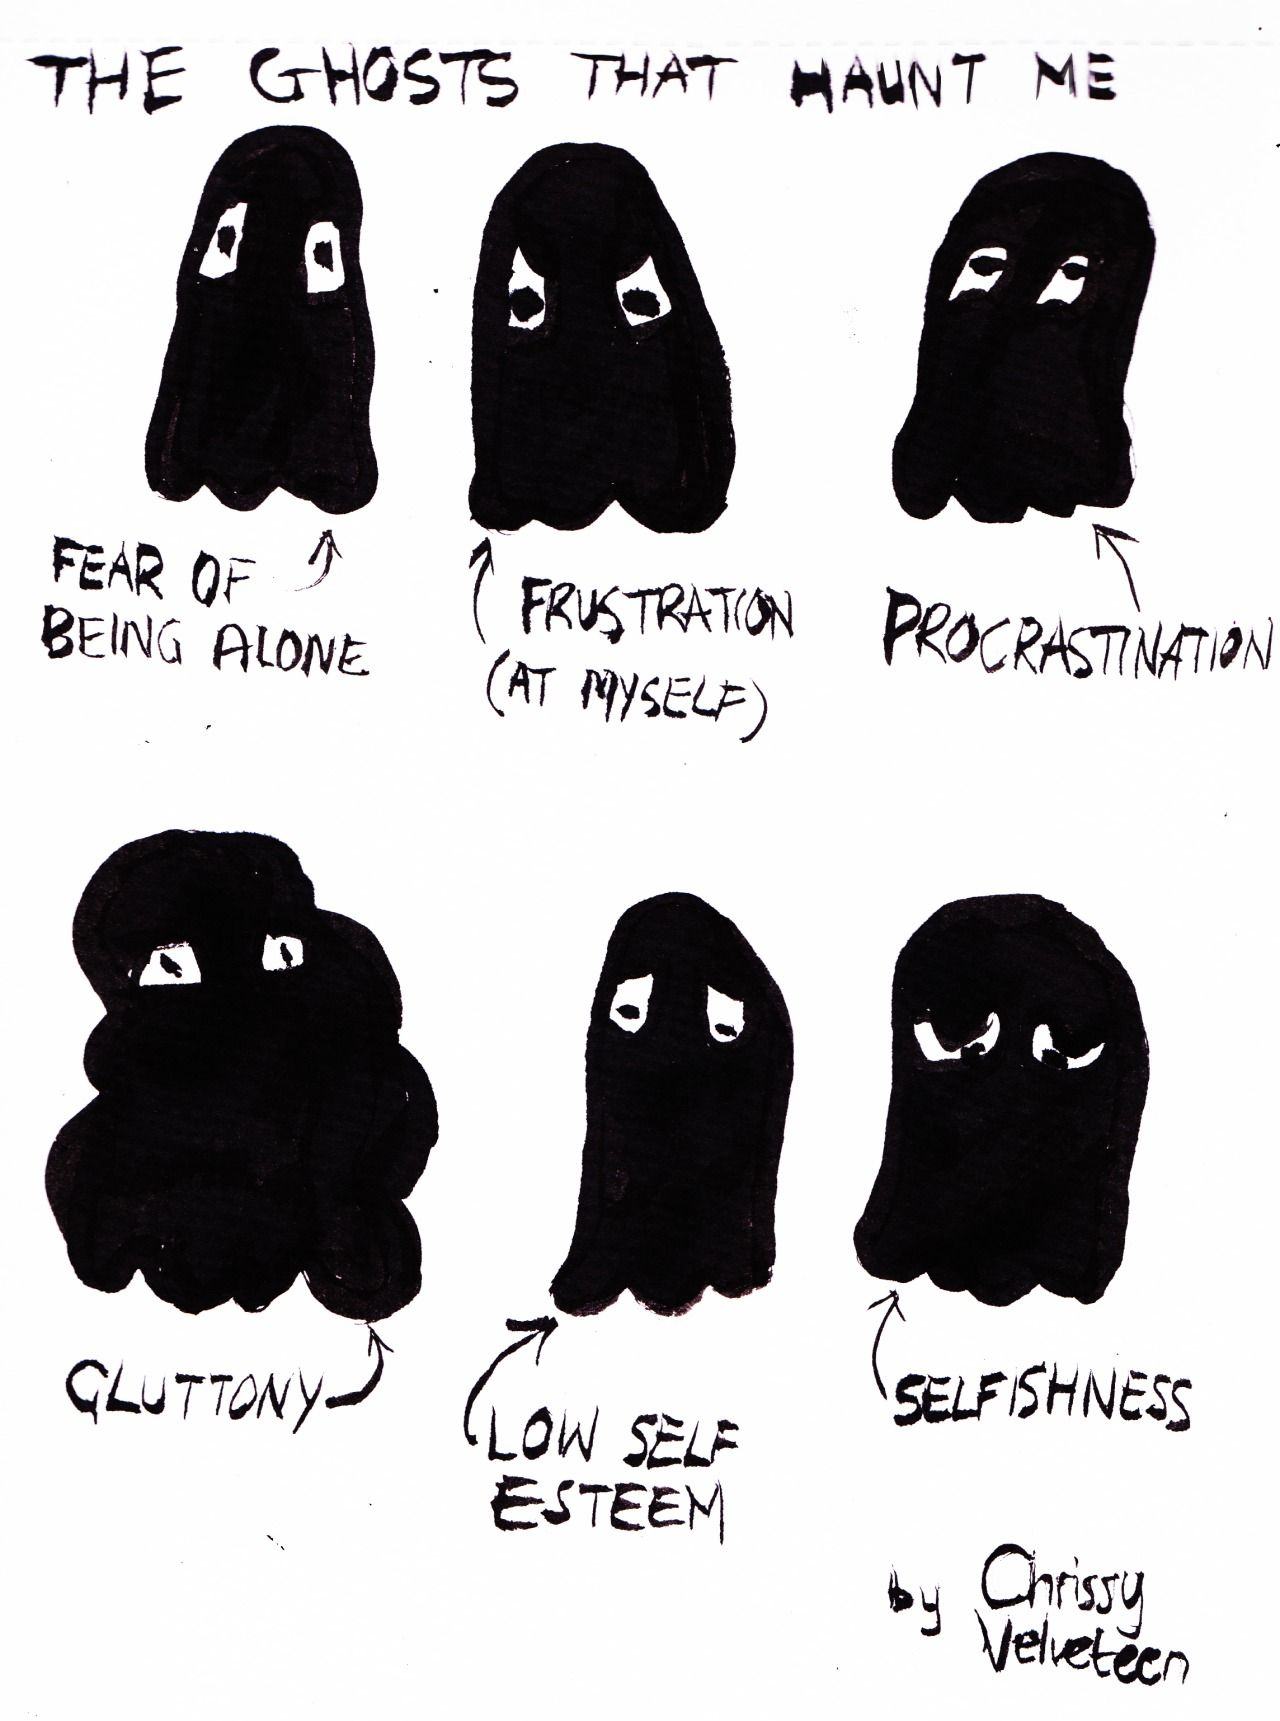 Art Directive Chrissy Velveteen Drawing Representations Of Ghosts That Haunt You Can Be